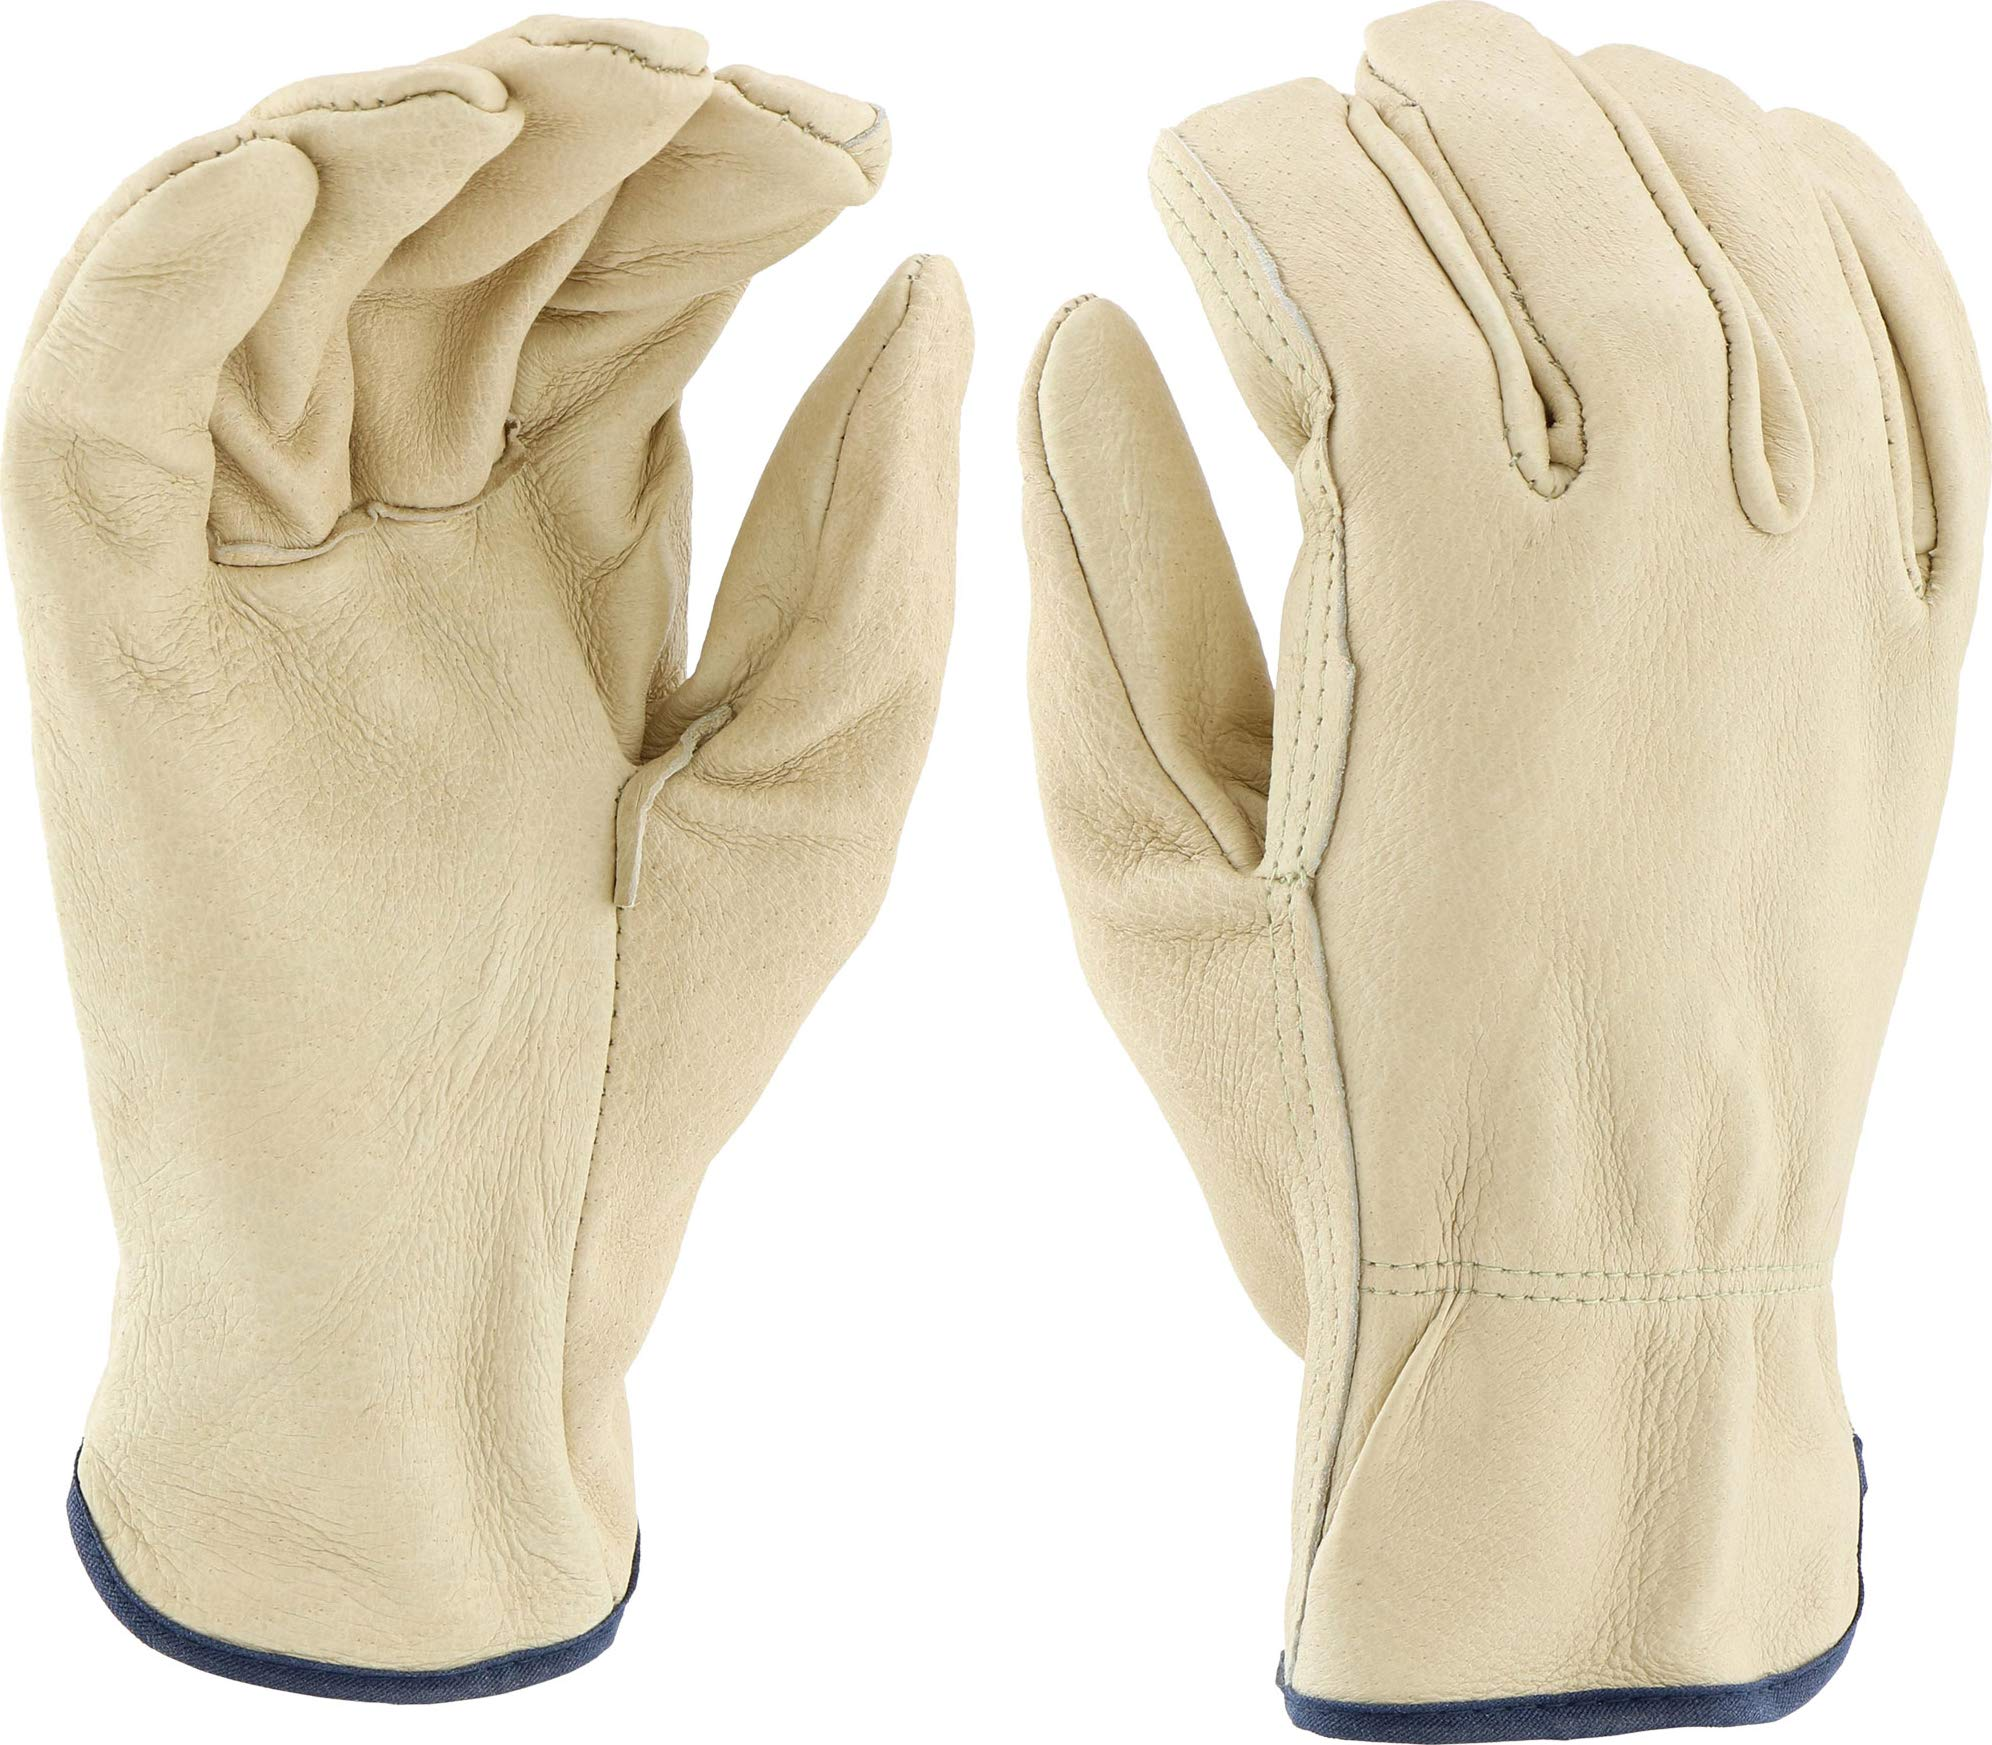 West Chester 994 Select Grain Pigskin Leather Driver Work Gloves: Straight Thumb, Large, 12 Pairs